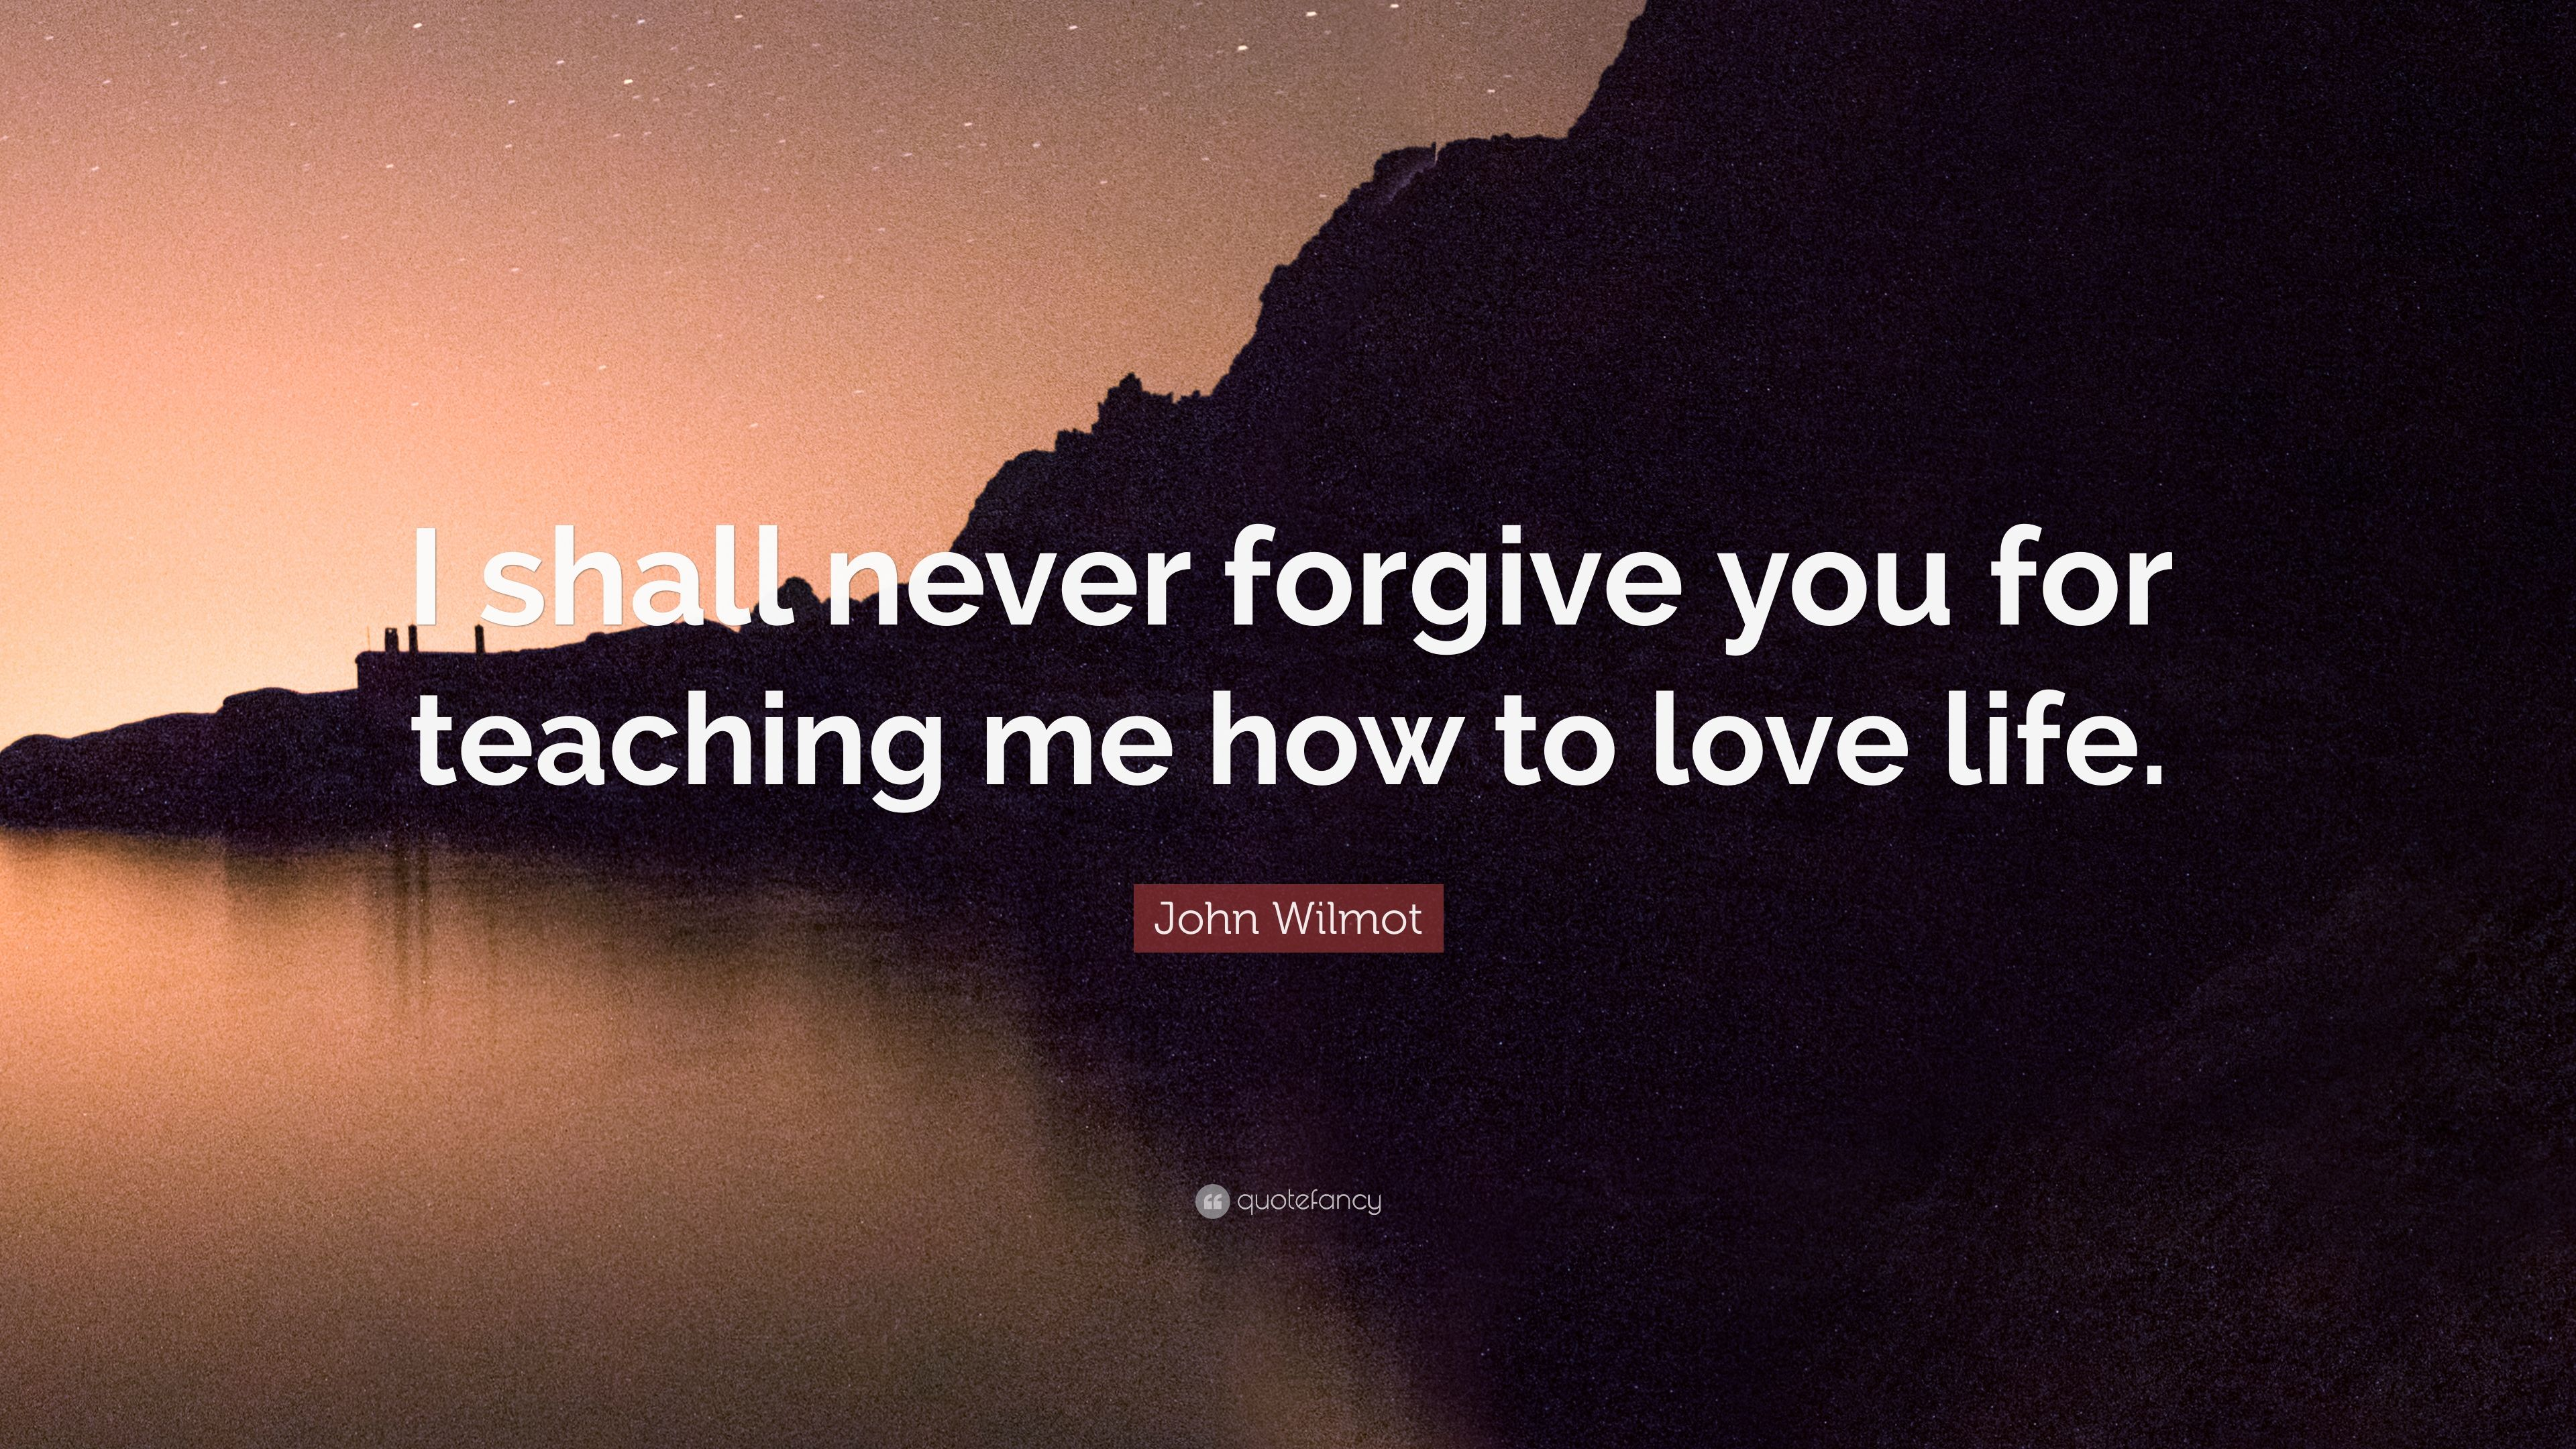 John Wilmot Quote I Shall Never Forgive You For Teaching Me How To